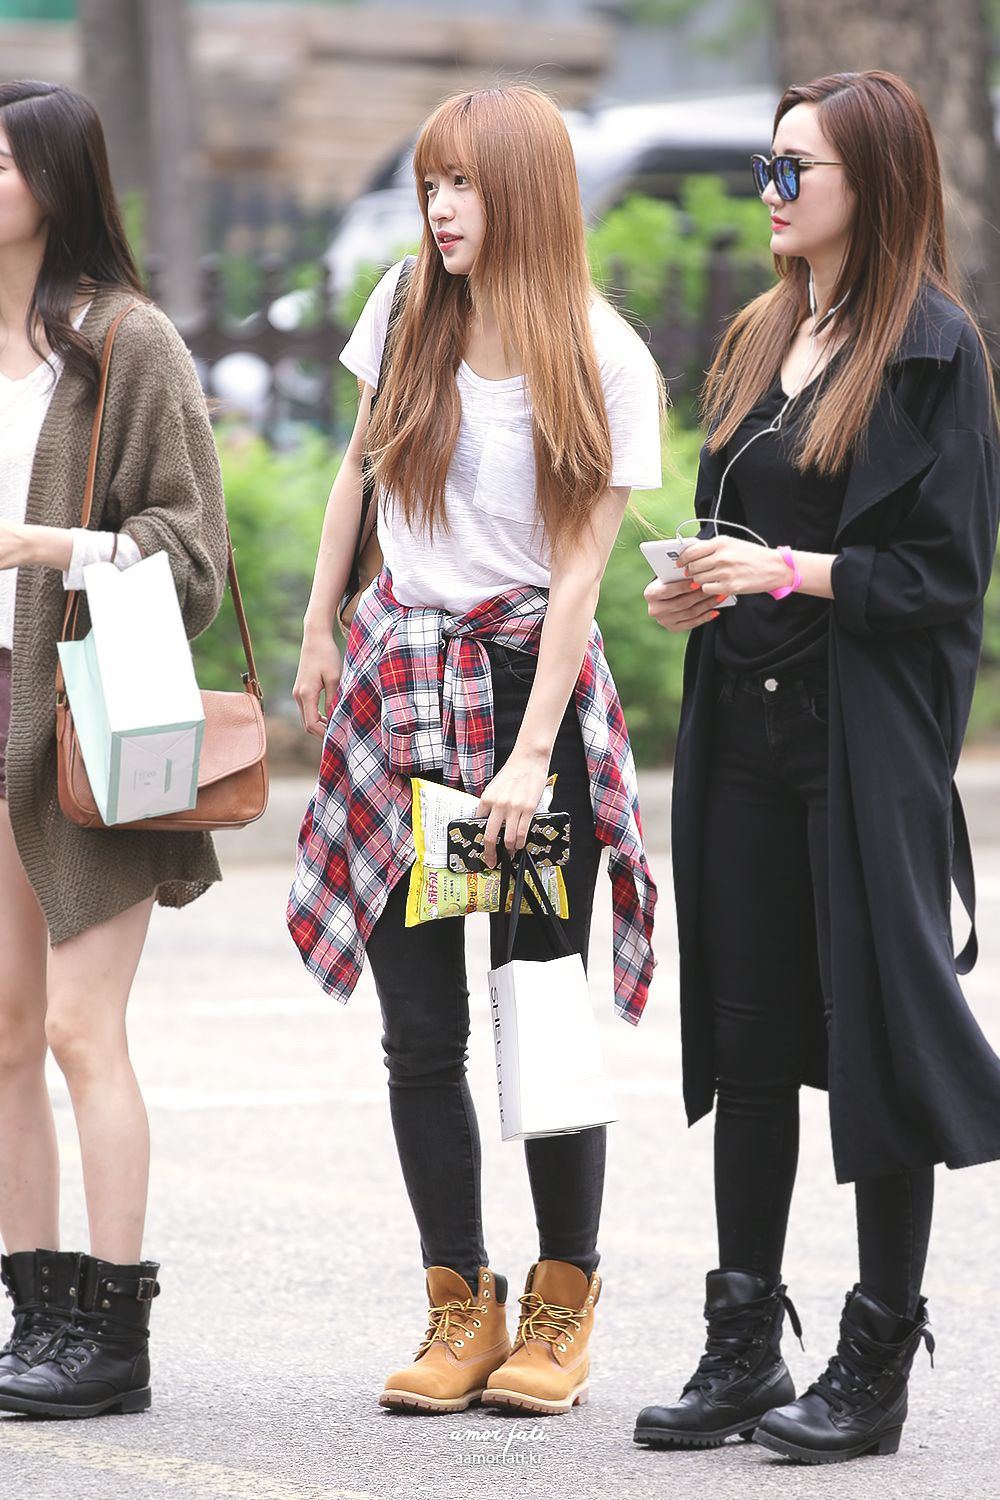 Love Hani S Outfit Here 3 White Tee Flannel Black Pants And